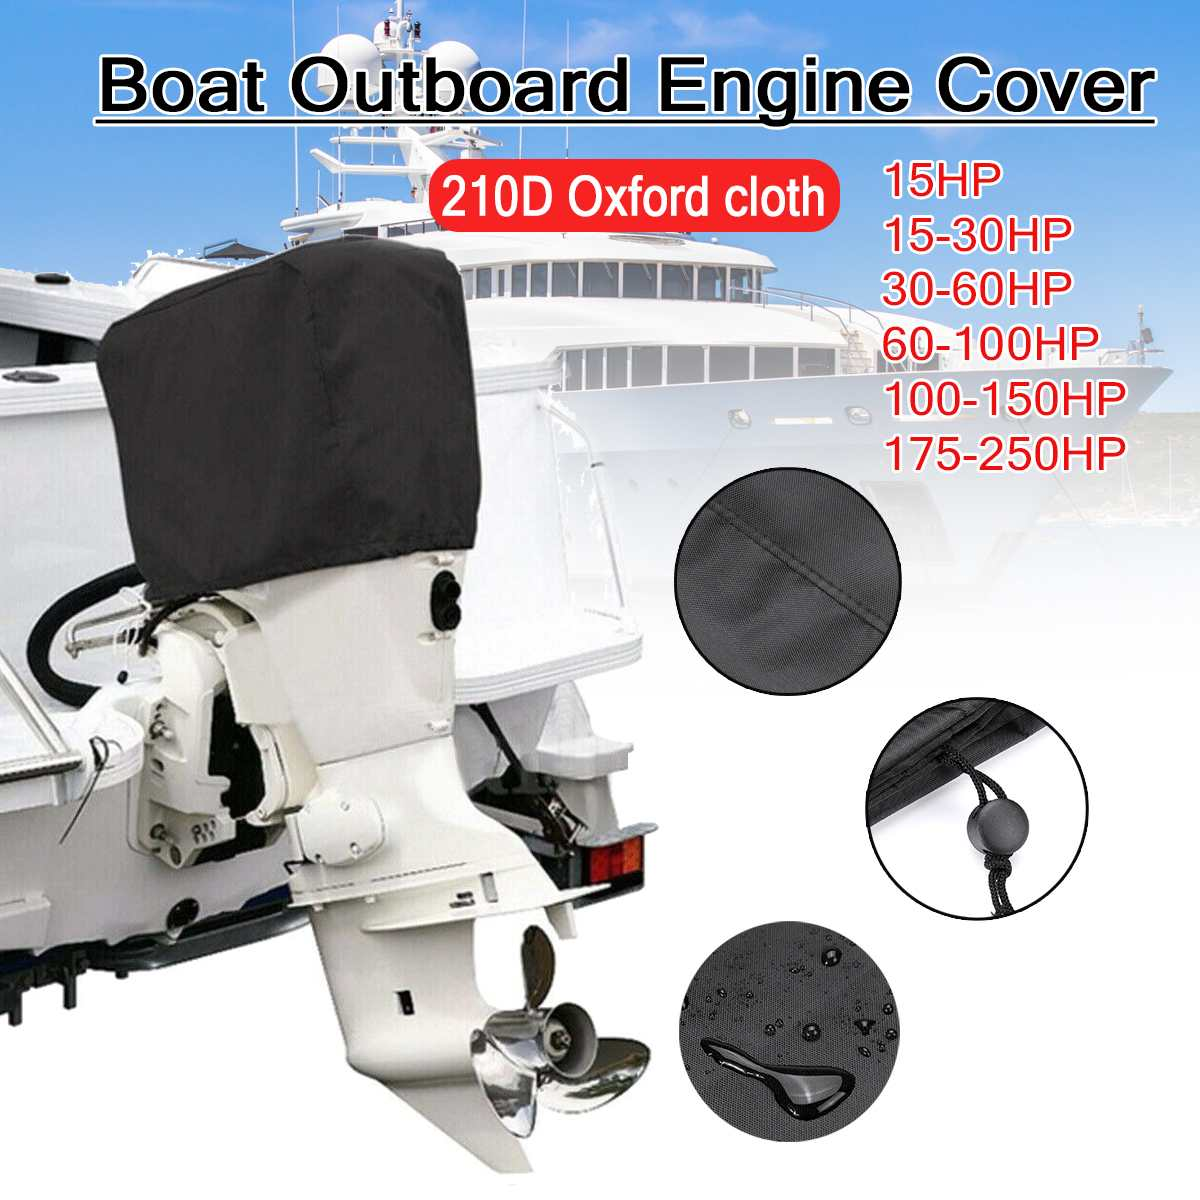 210D Oxford 15-250HP Boat Motor Cover Outboard Engine Protector Covers Waterproof 15 30 60 100 150 170 250 PH Motor Heavy-Duty